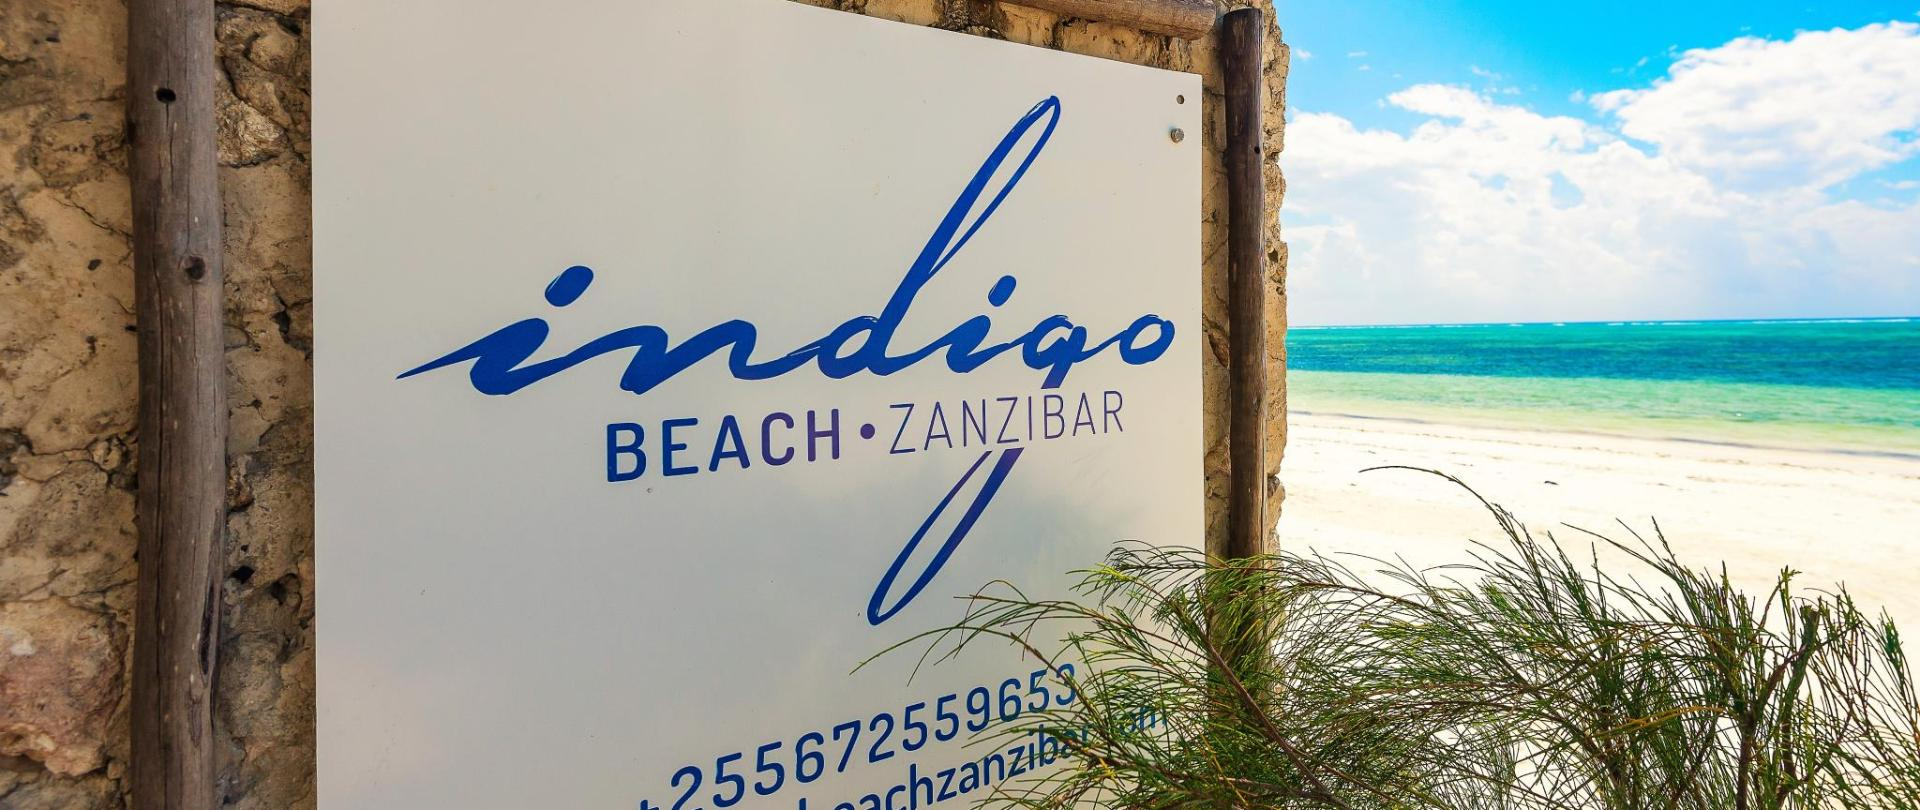 Indigo beach resort sign.jpg